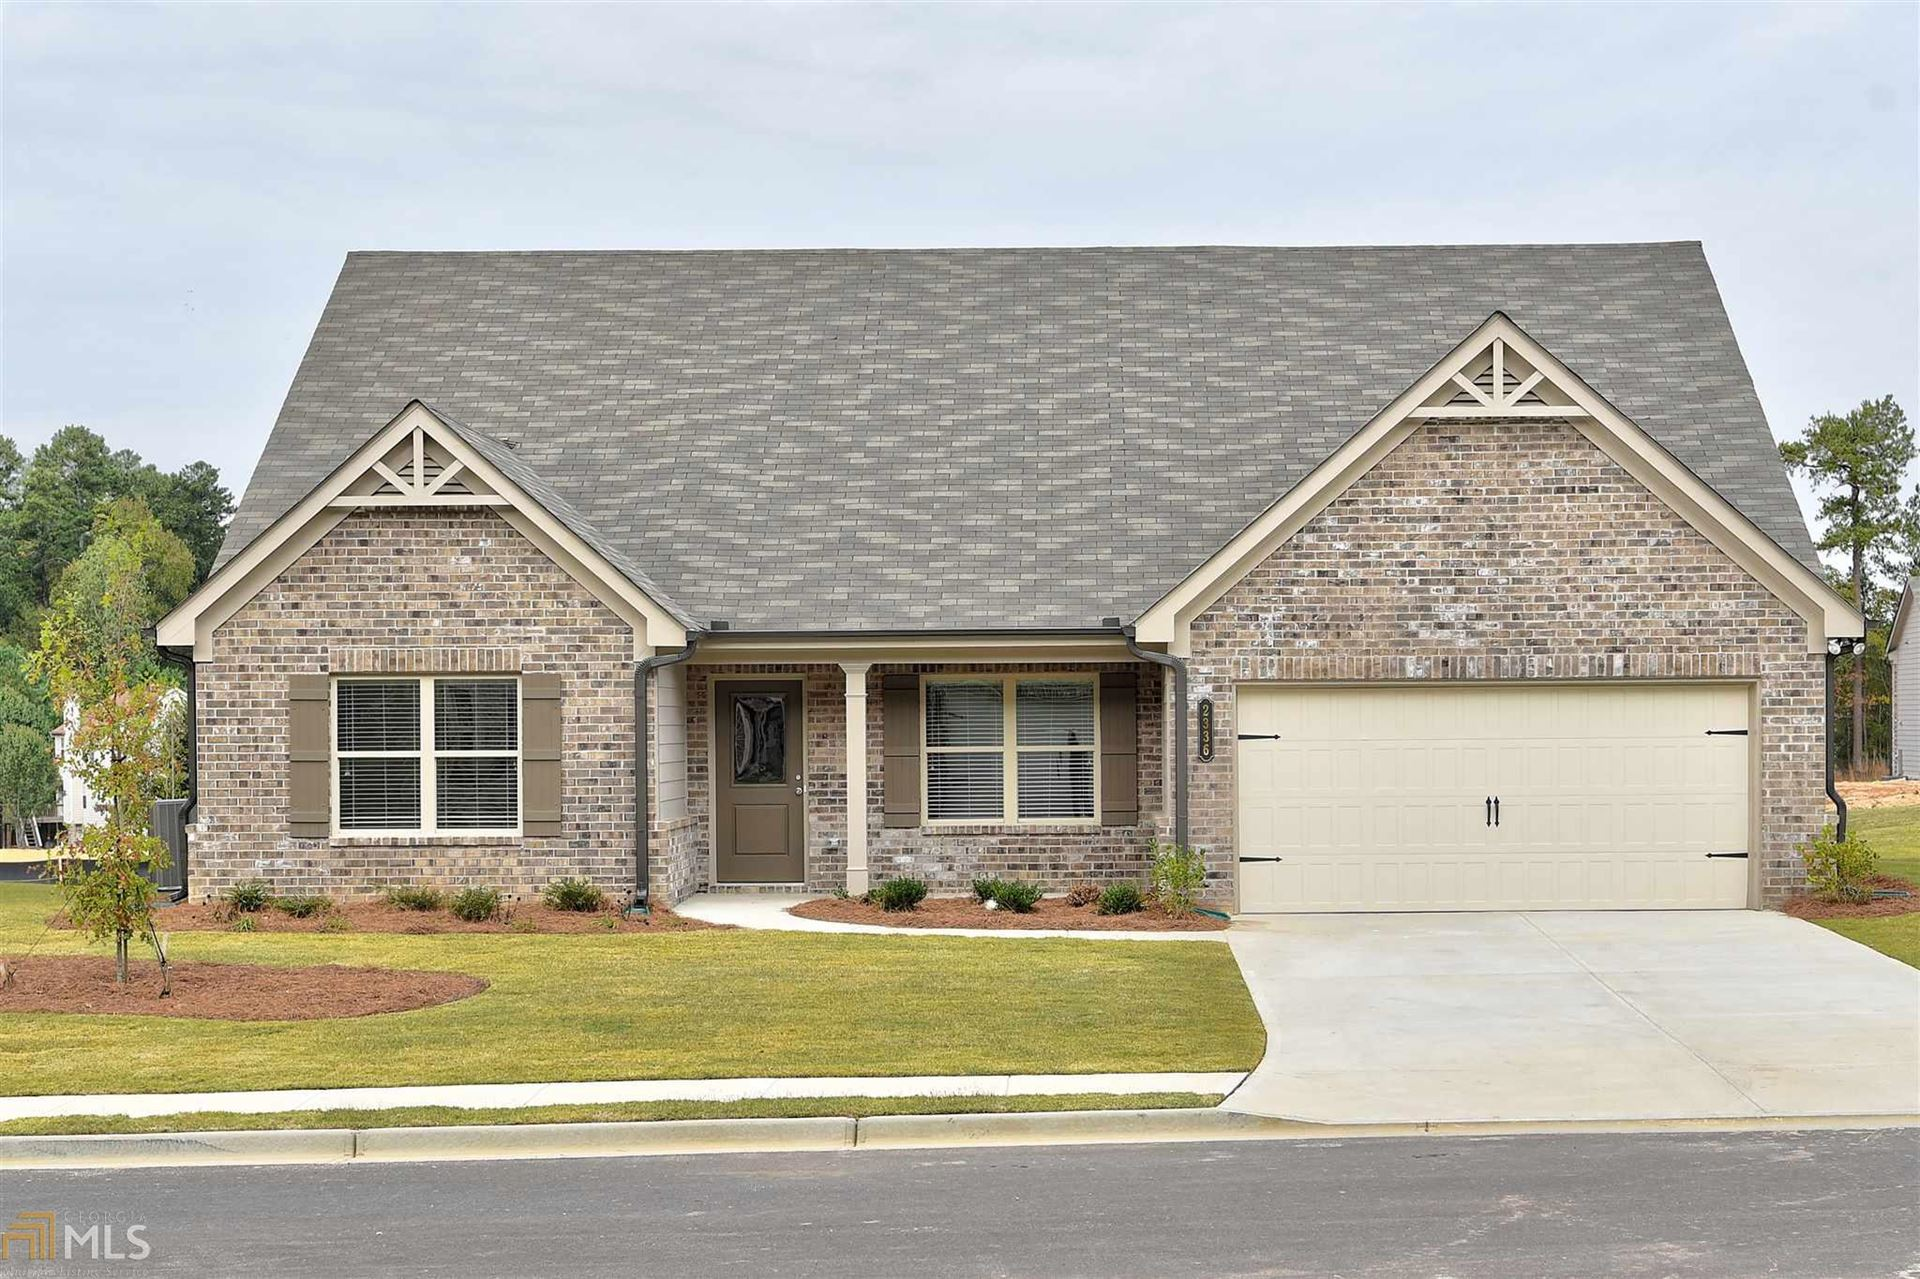 3707 In Bloom Way, Auburn, GA 30011 - #: 8765118